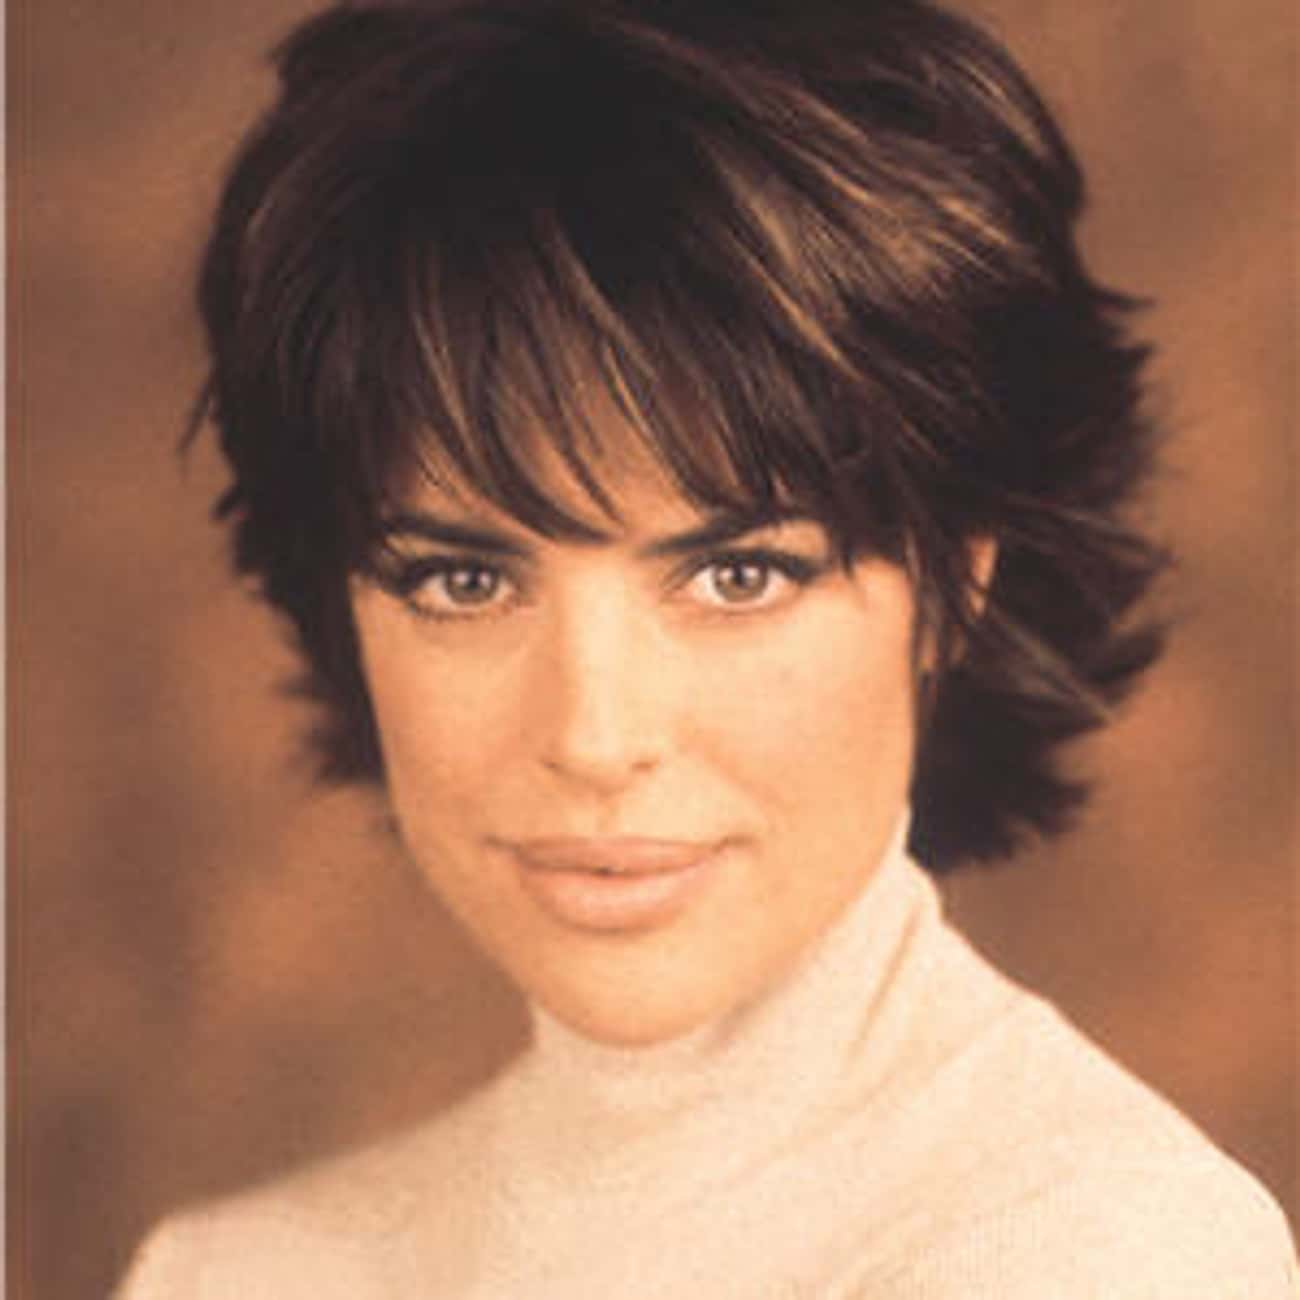 Young Lisa Rinna in White Turt is listed (or ranked) 3 on the list 11 Pictures of Young Lisa Rinna